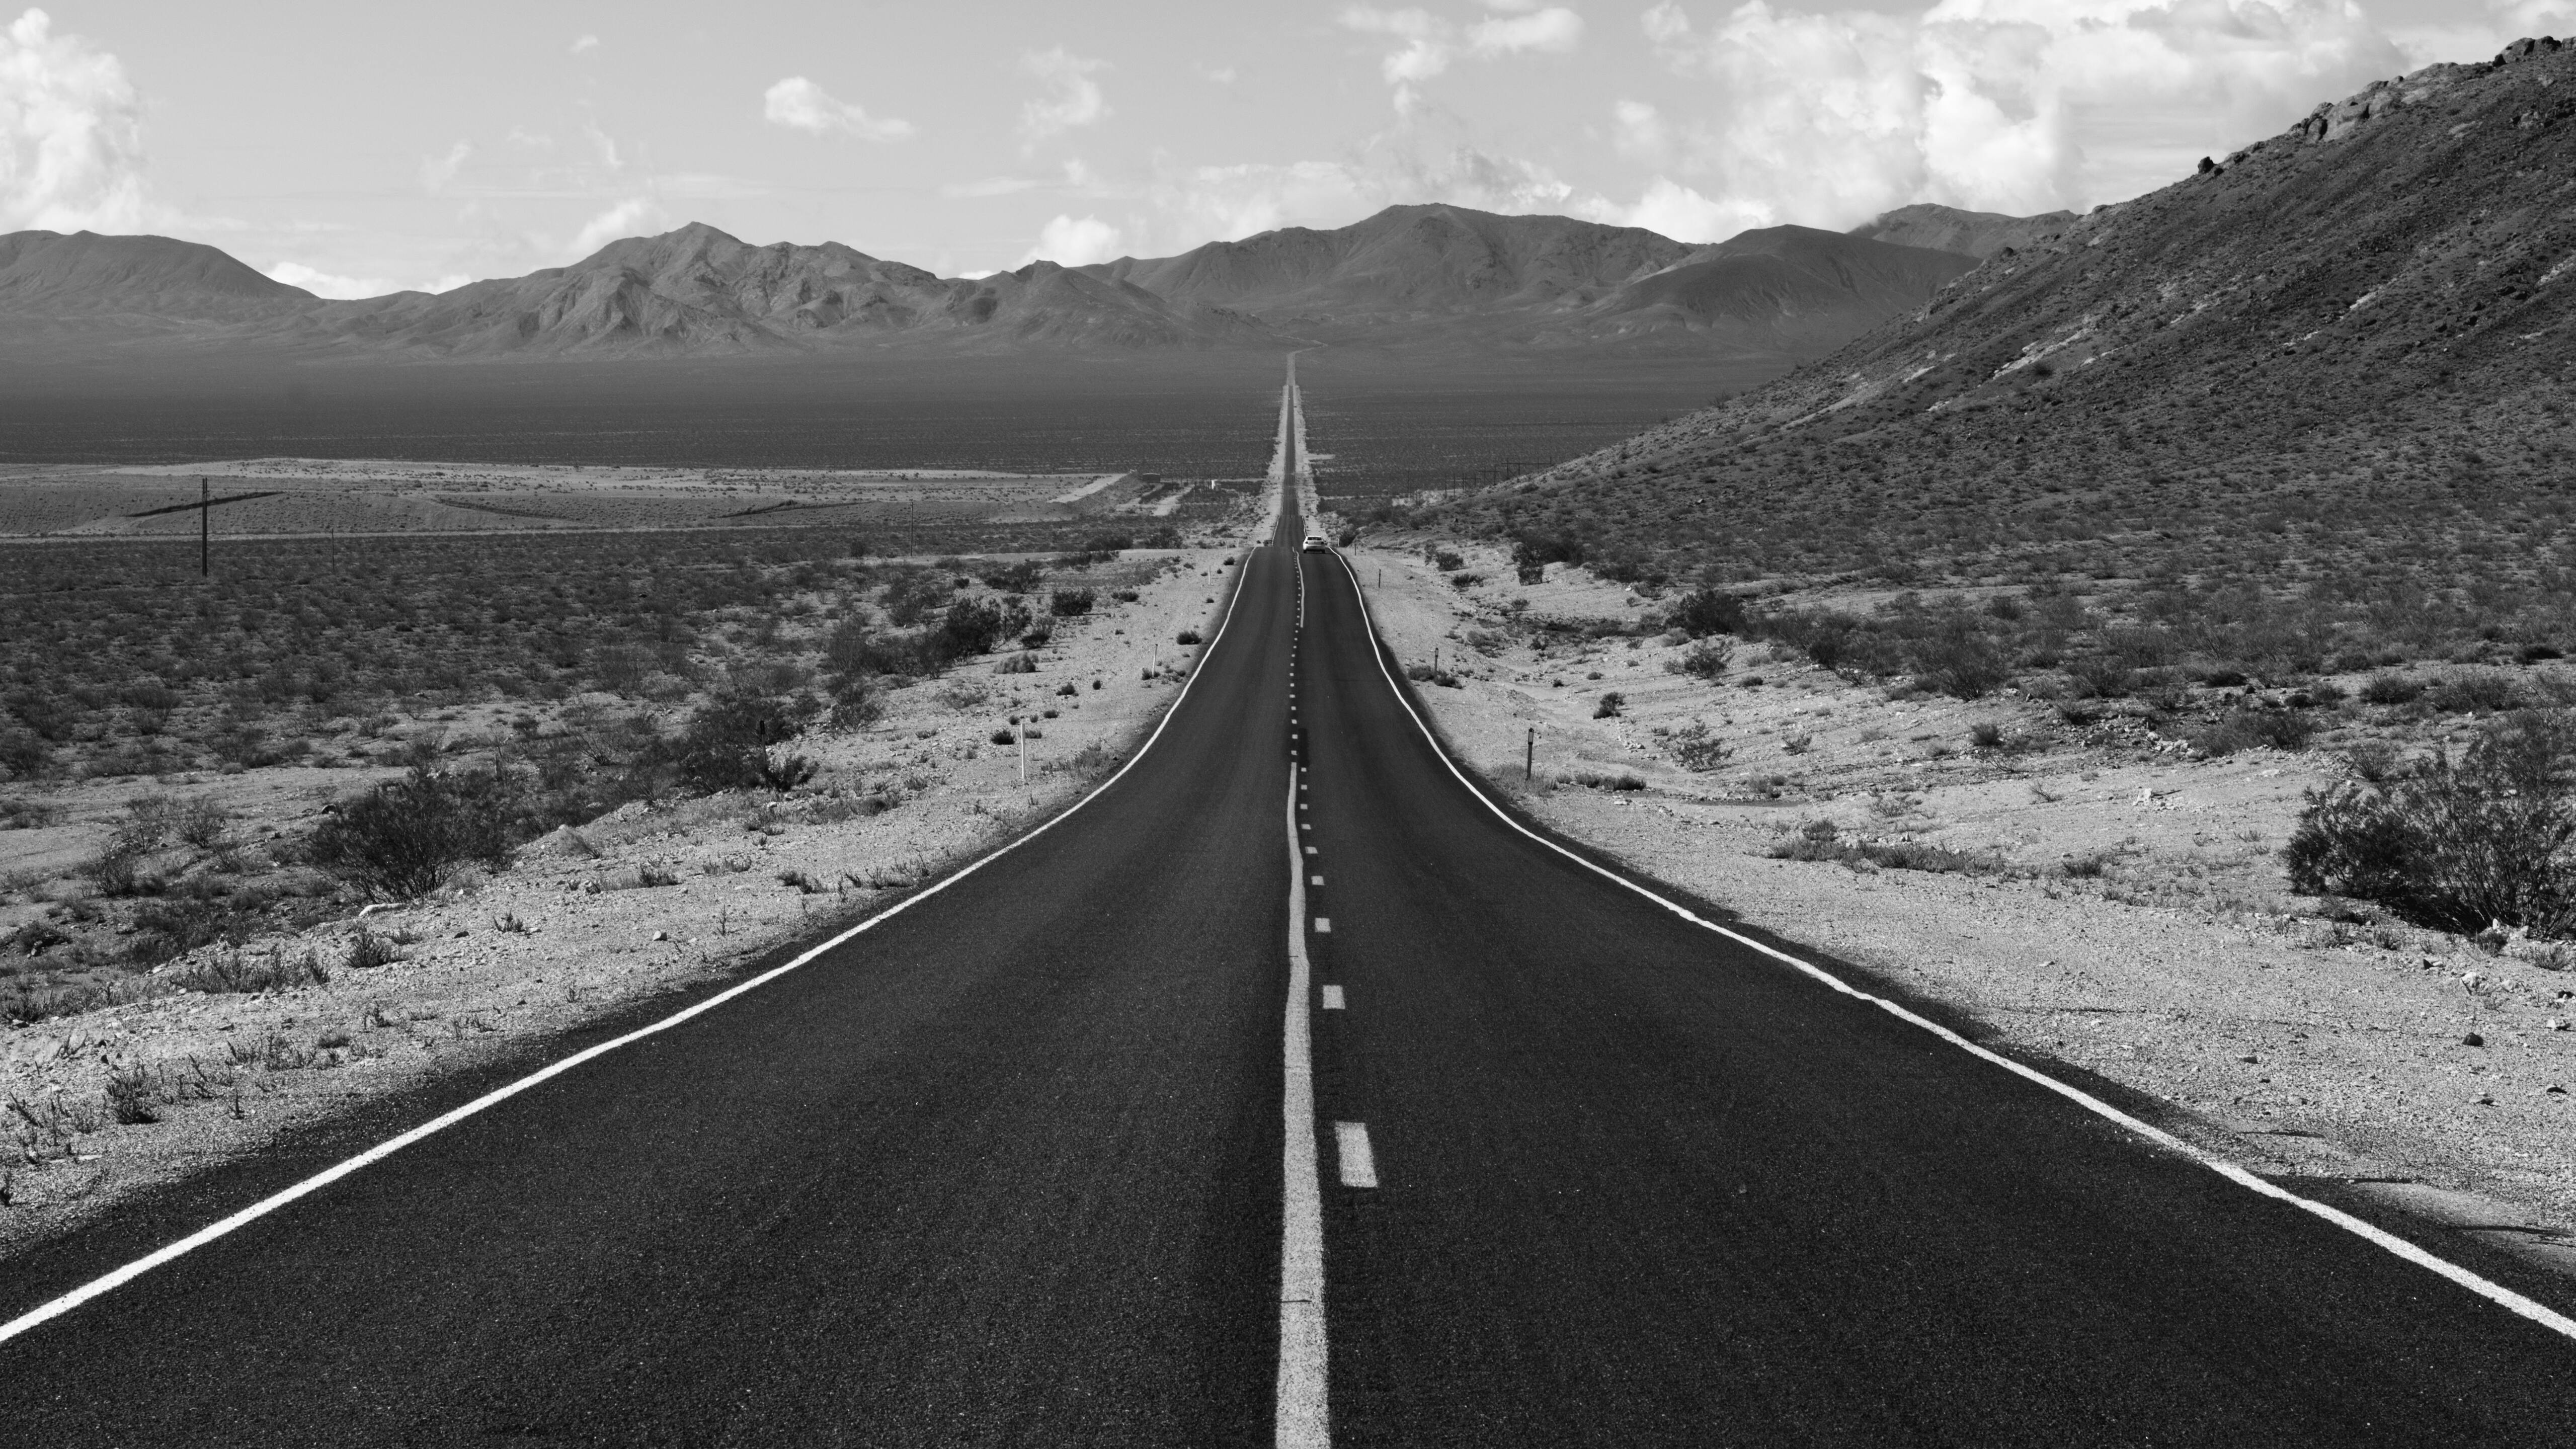 5120x2880 Road Grayscale Photography 5k Hd 4k Wallpapers Images Backgrounds Photos And Pictures